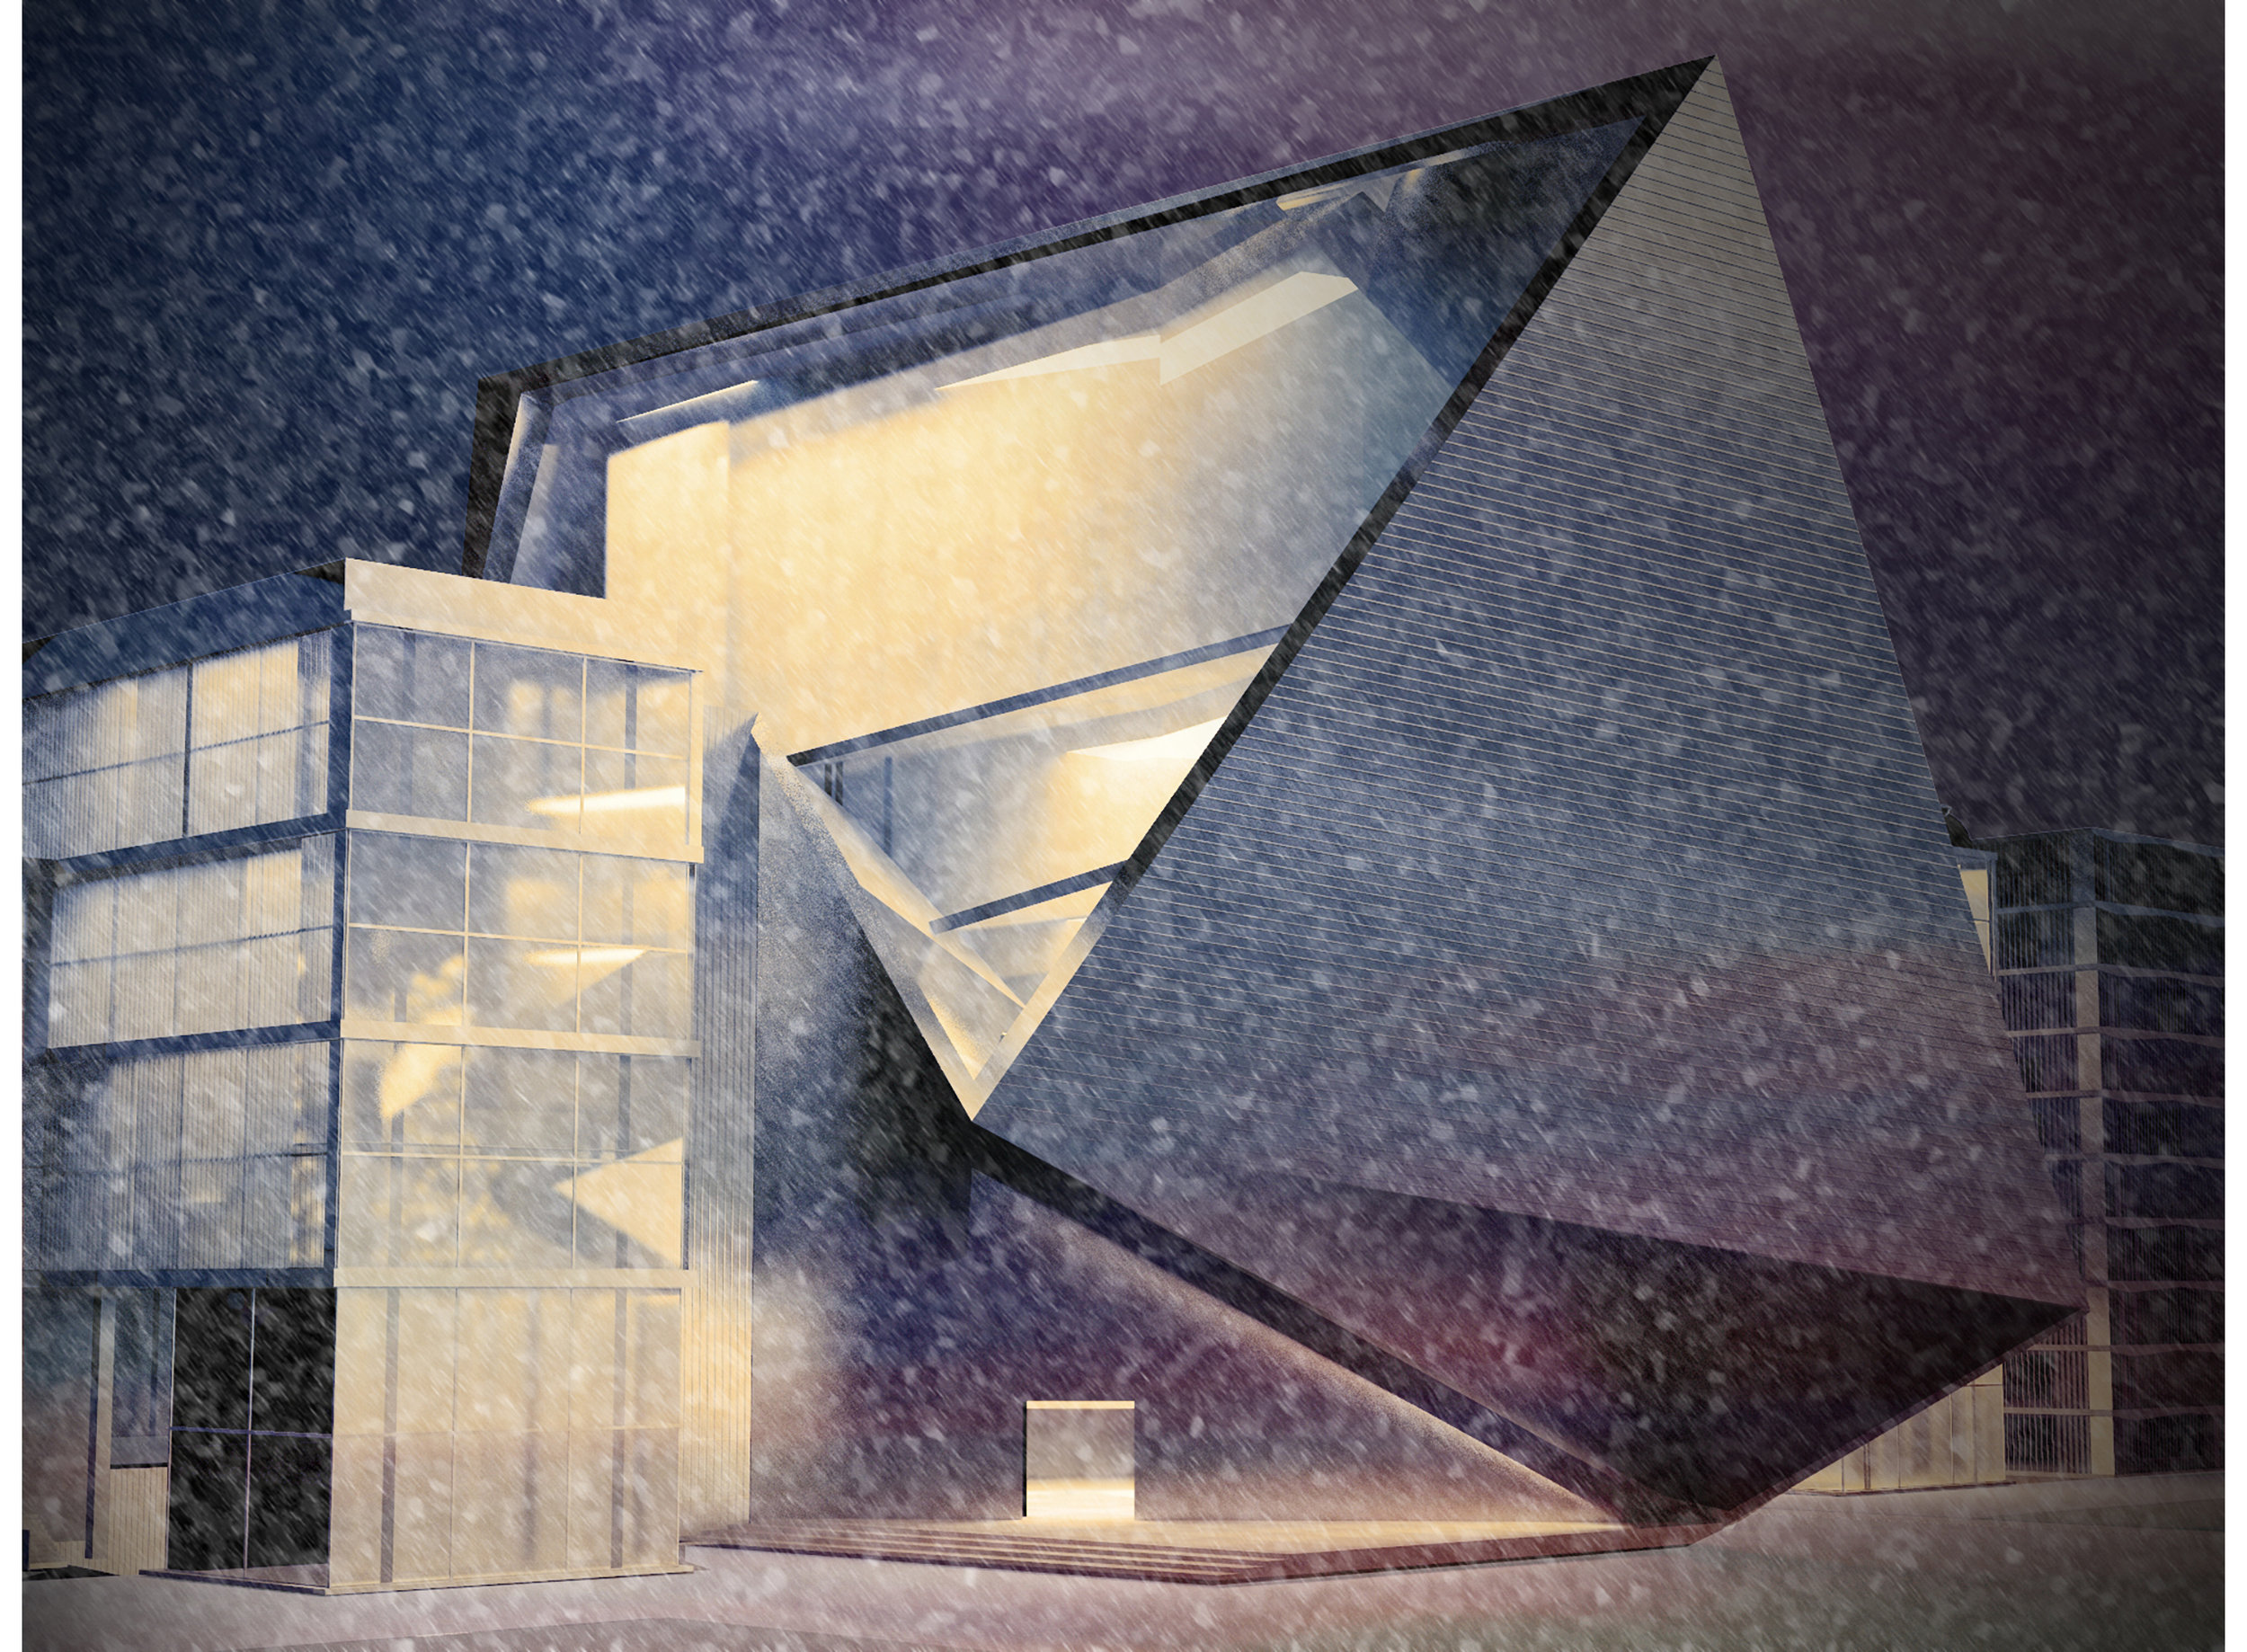 Architectural night 3D render with snow